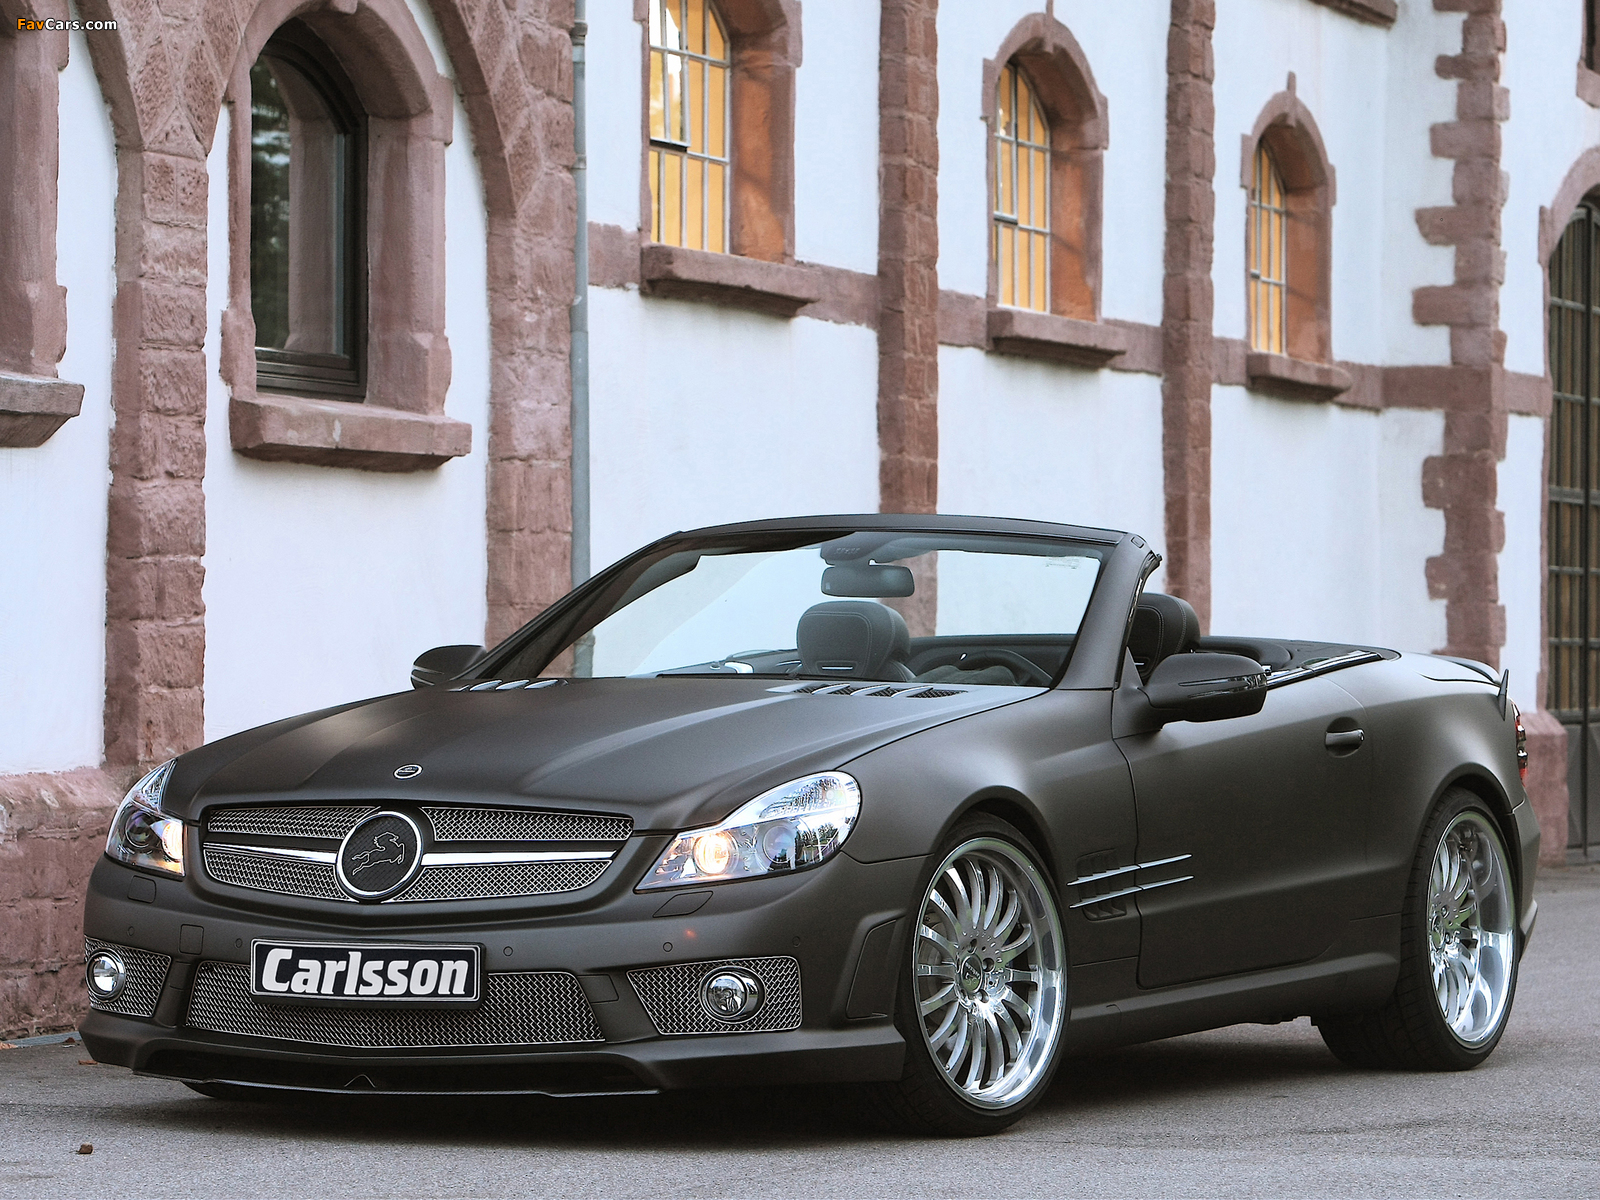 Carlsson CK 63 RS (R230) 2009 wallpapers (1600 x 1200)